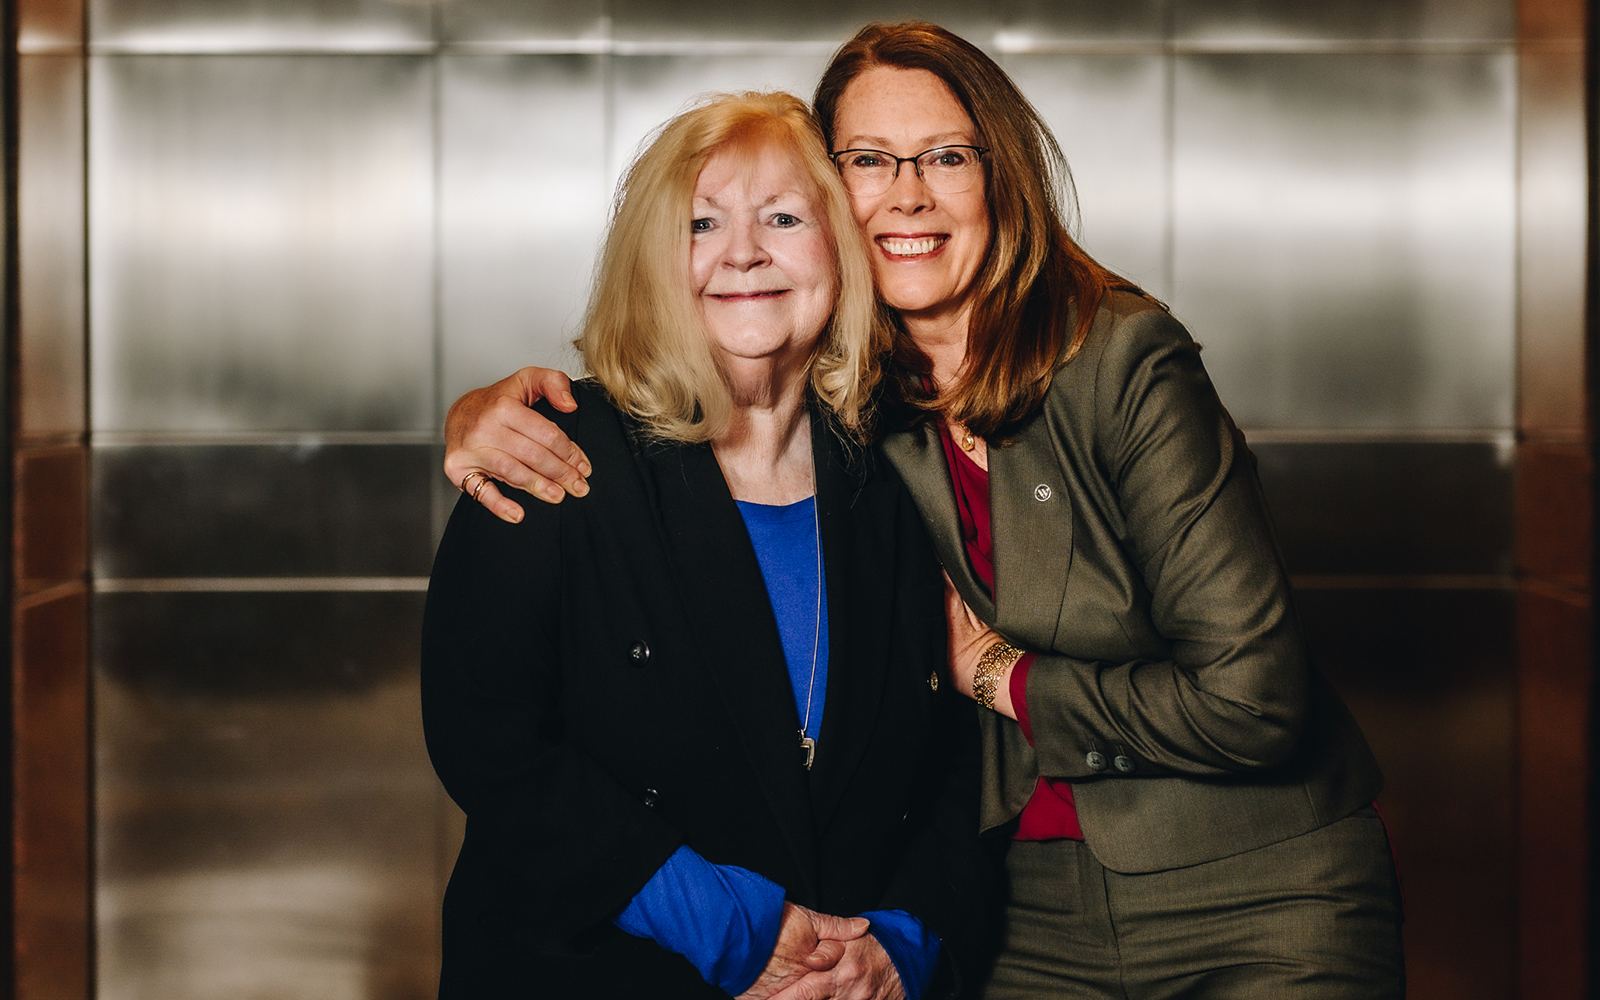 Tracie Borden (left), director  of administration & external affairs at UConn Waterbury, poses with Luria (right). (Nathan Oldham / UConn School of Business)